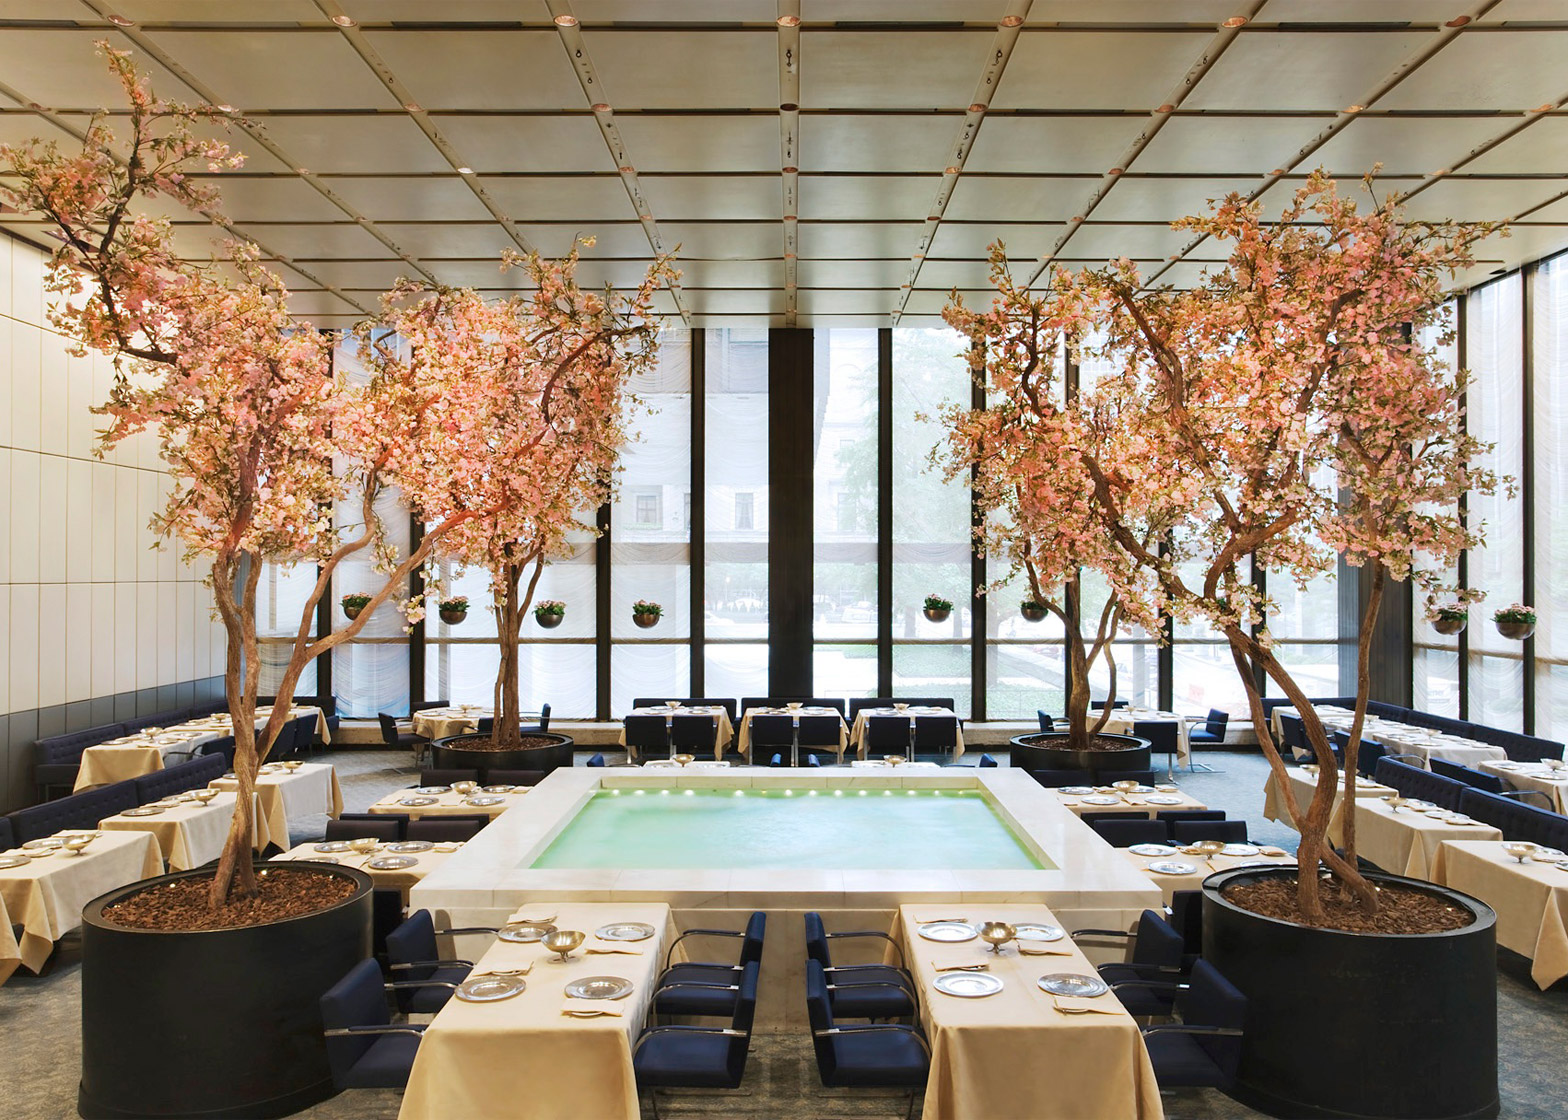 Four Seasons restaurant by Philip Johnson and Mies van der Rohe furniture auction in New York City, USA